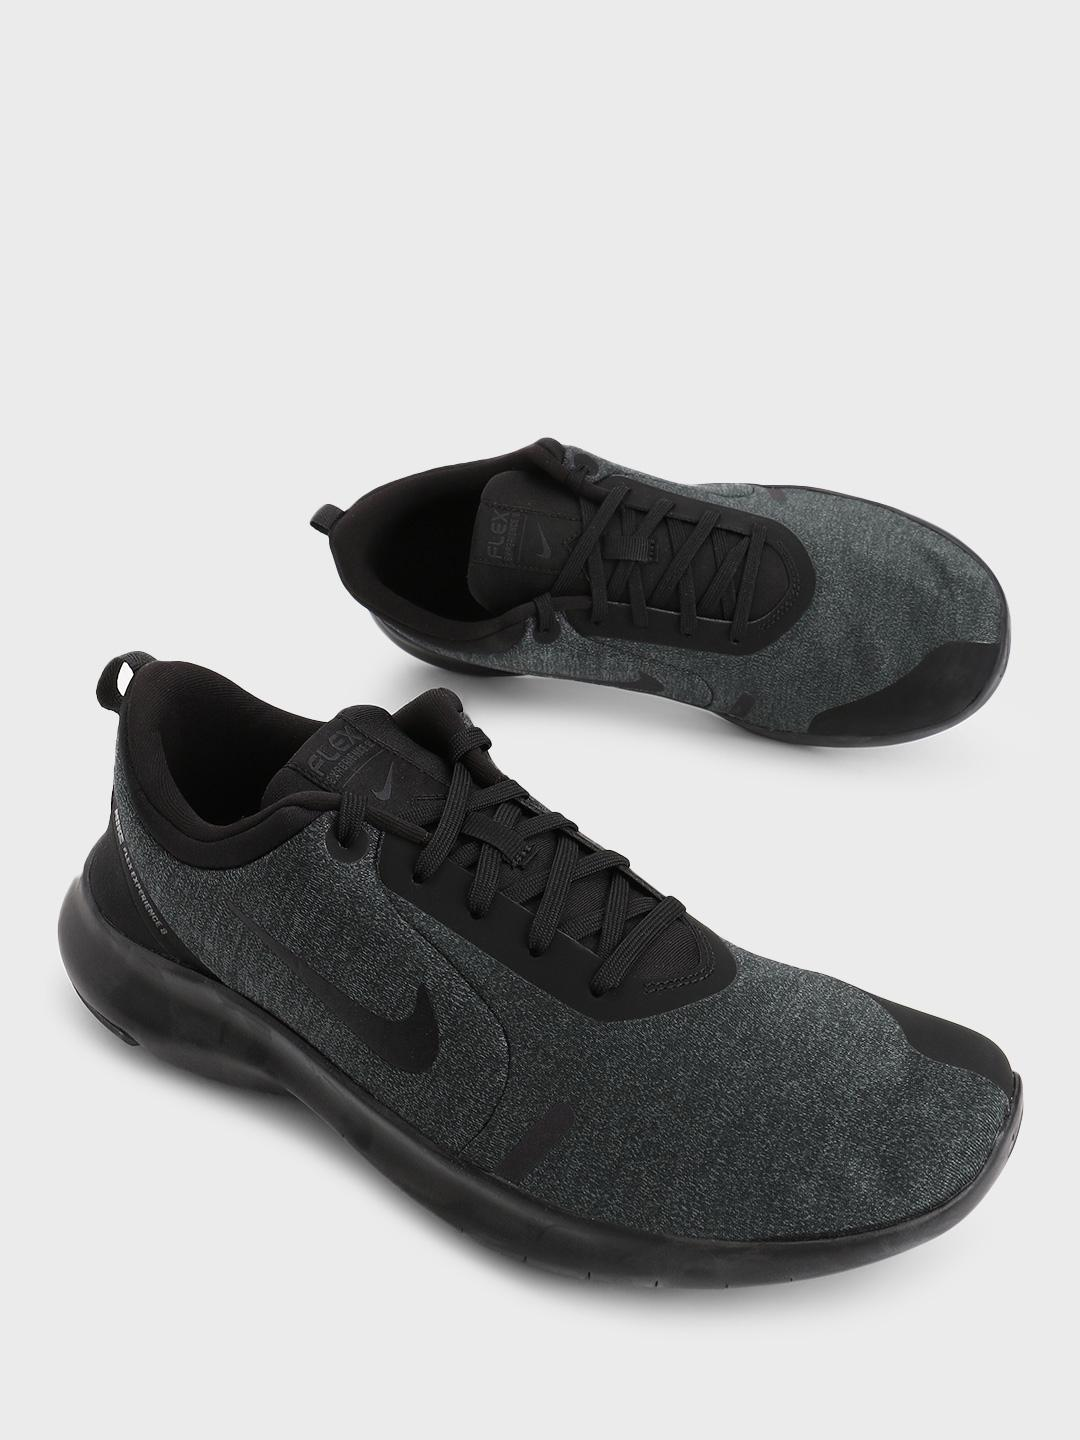 Nike Black Flex Experience Rn 8 Running Shoes 1